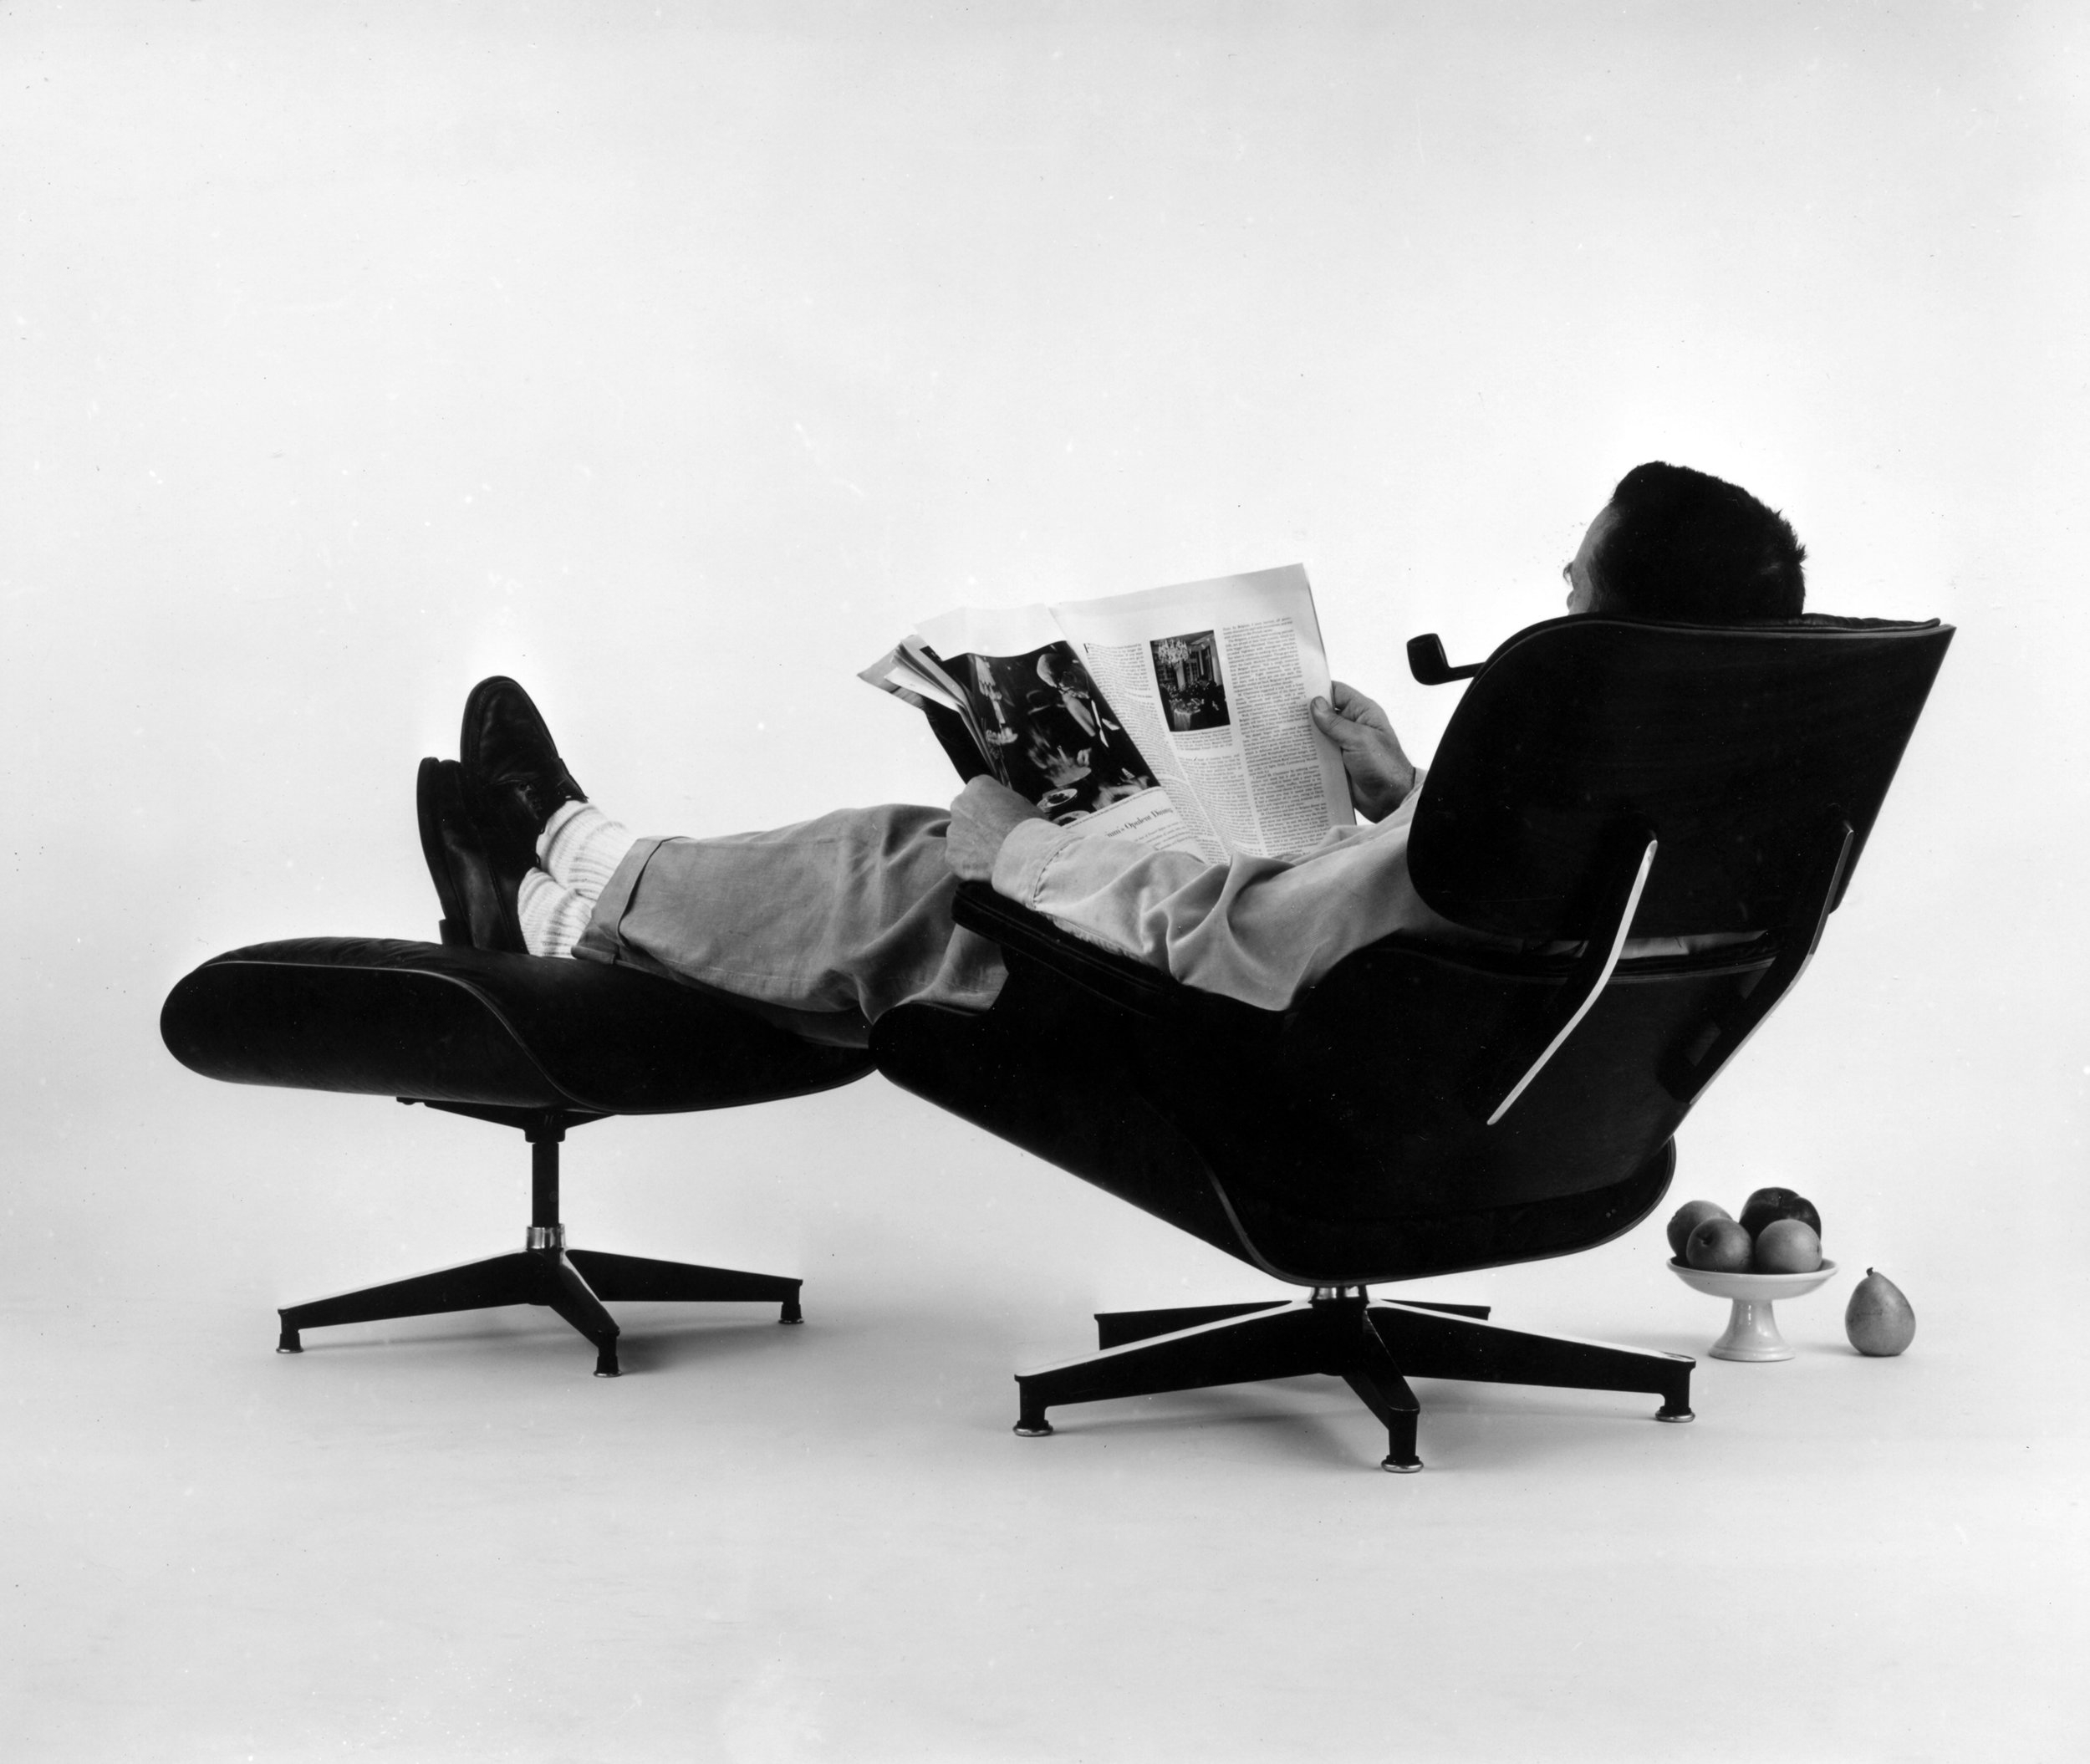 An Eames Celebration. Charles Eames posing in the Lounge Chair, photo for an advertisement, 1956. © Eames Office LLC